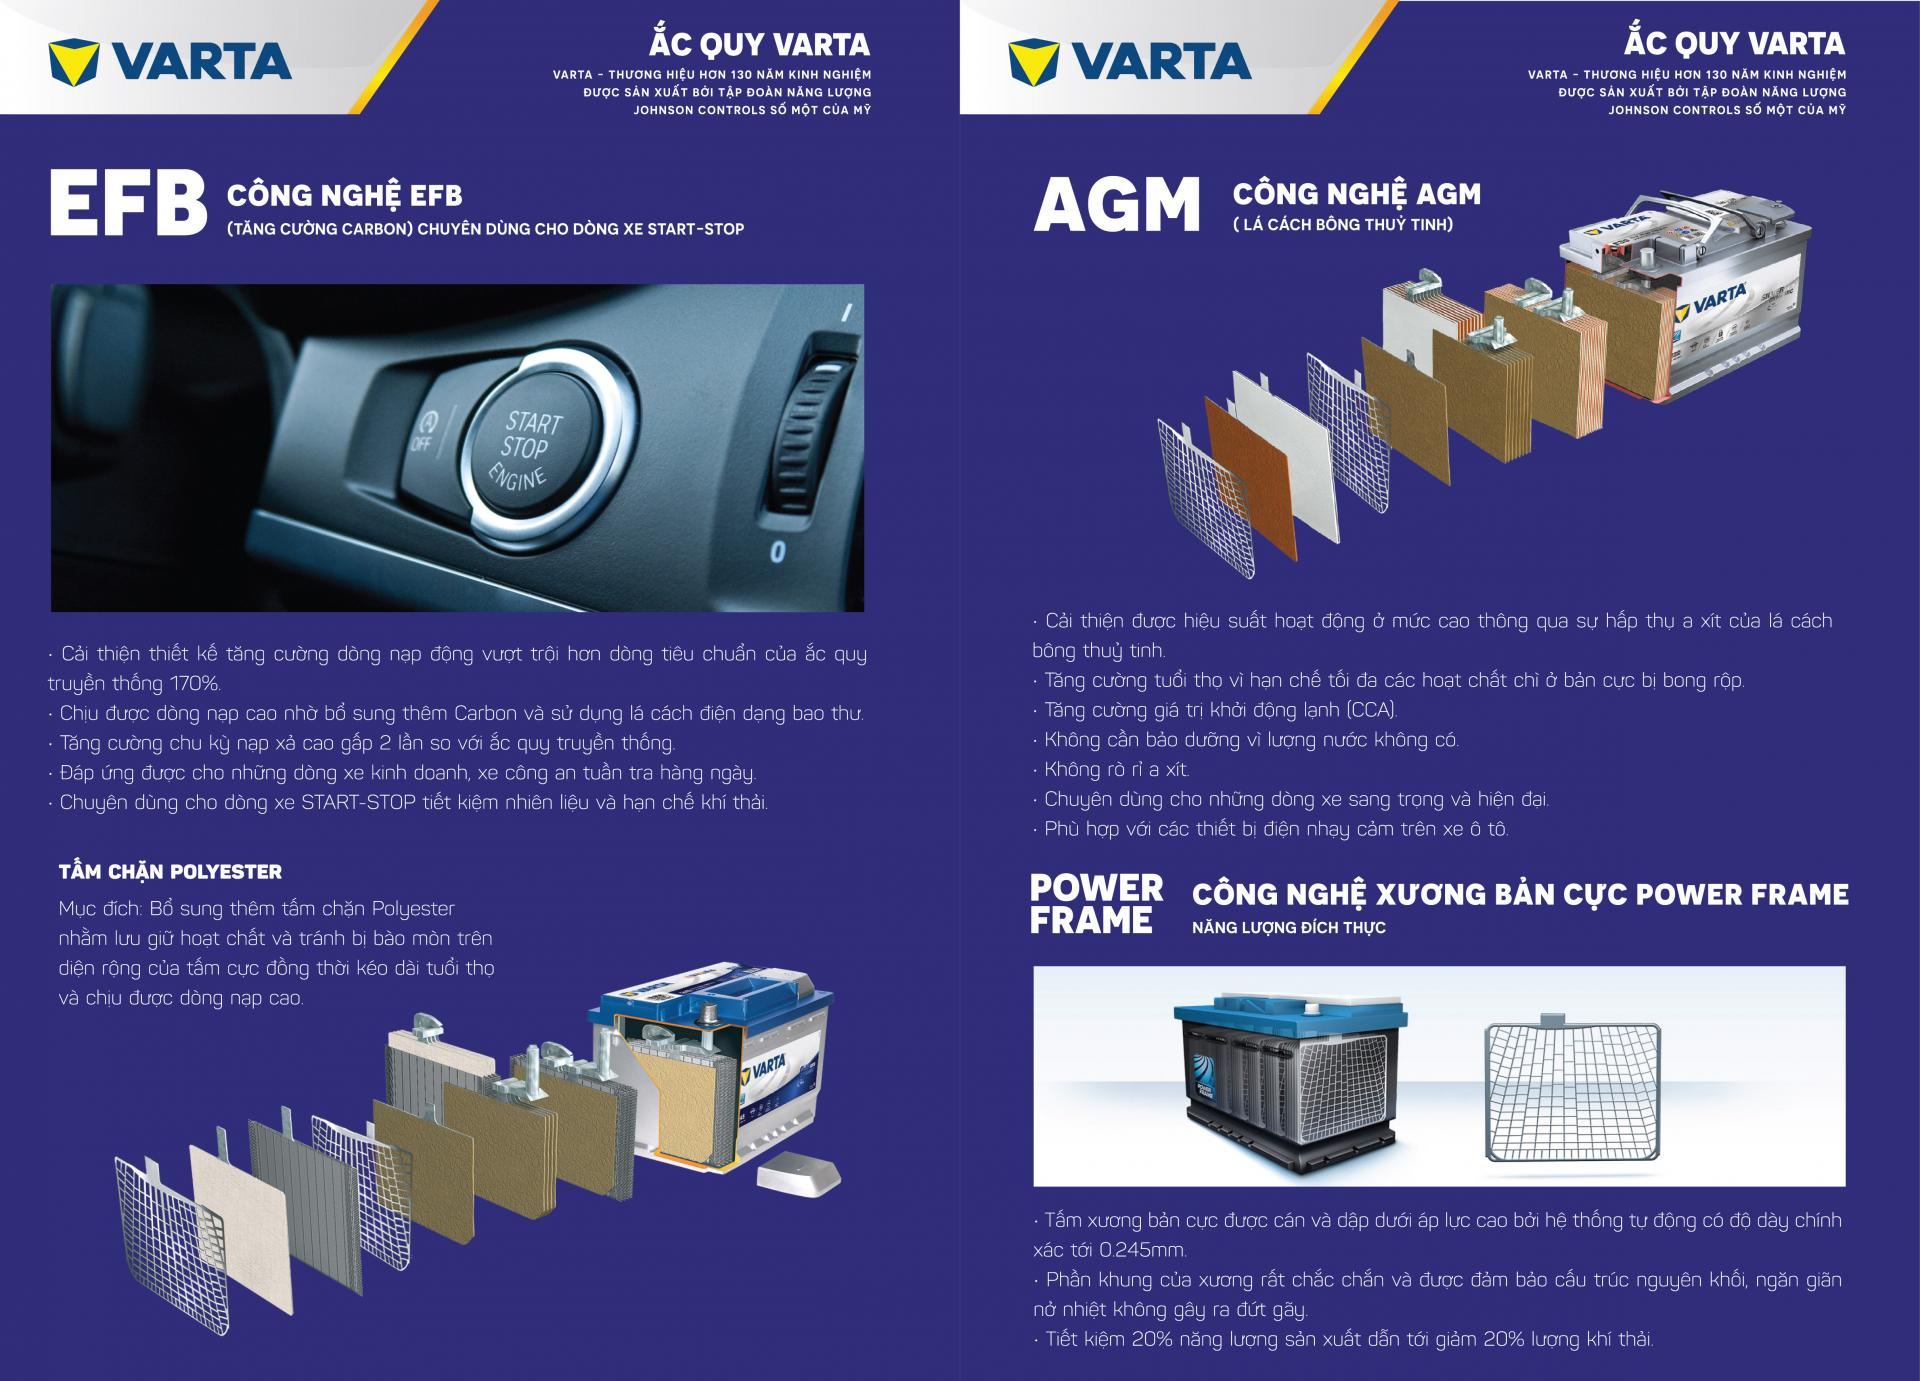 02.10.2017_VARTA_Brochure_convert_Edit-02